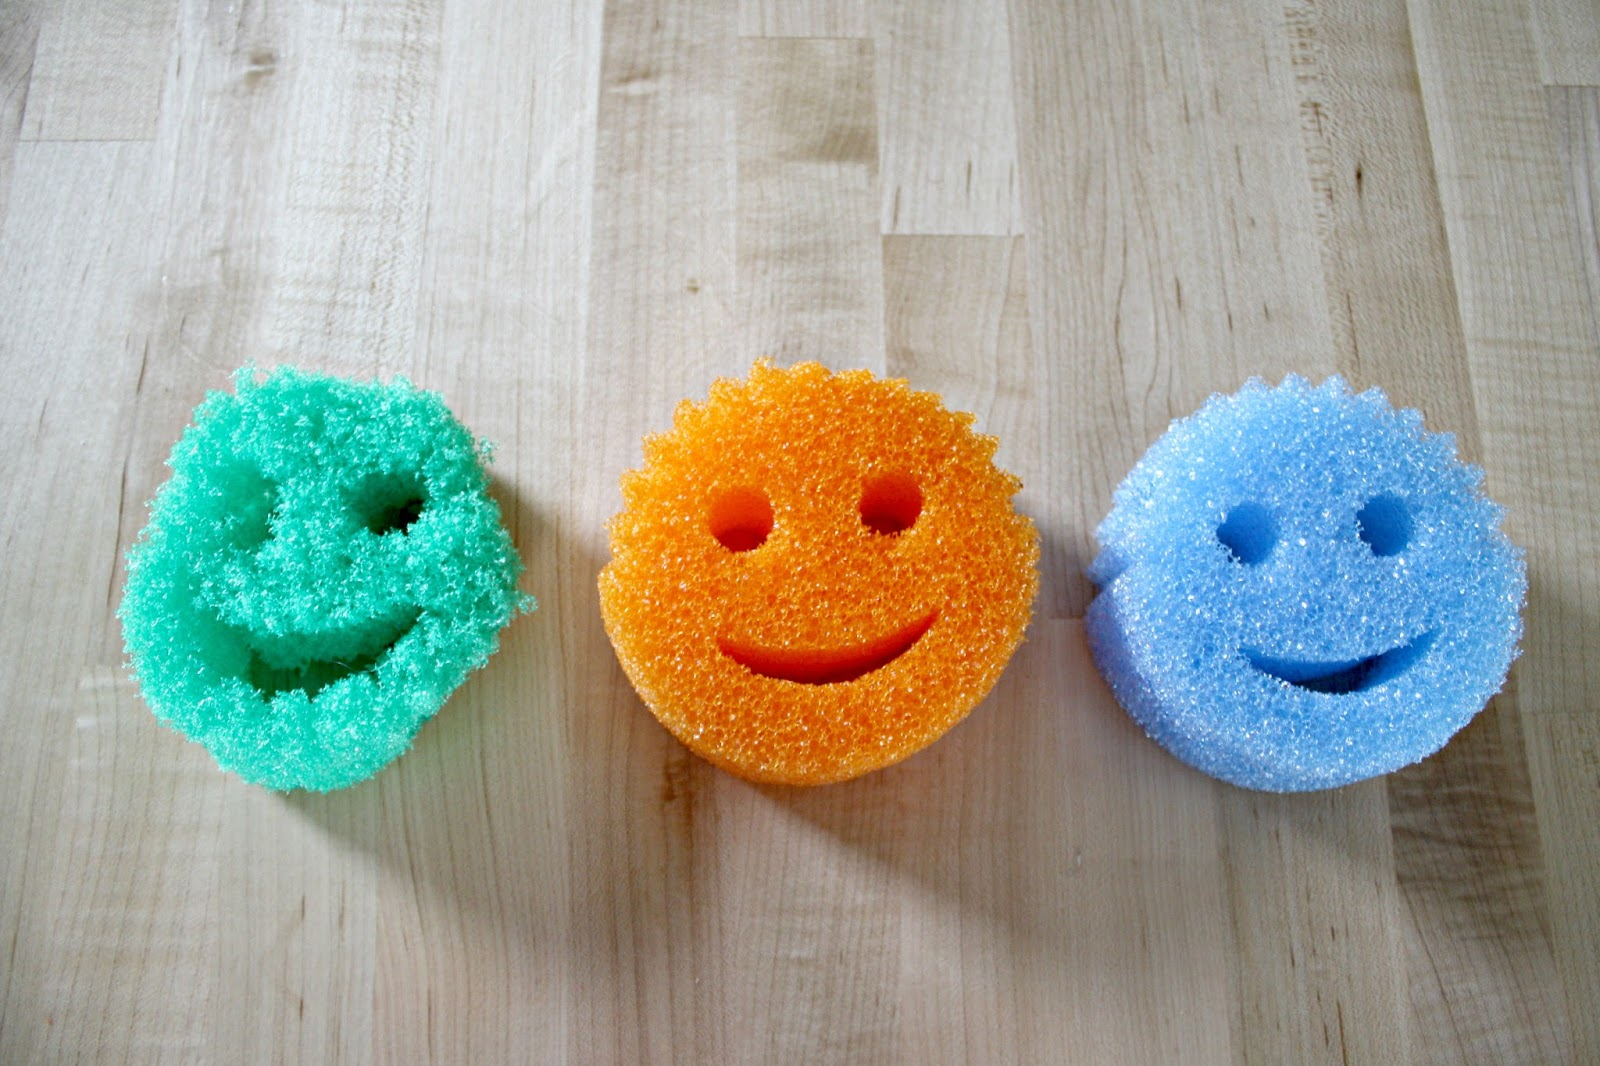 scrub daddy sponges -- the best!